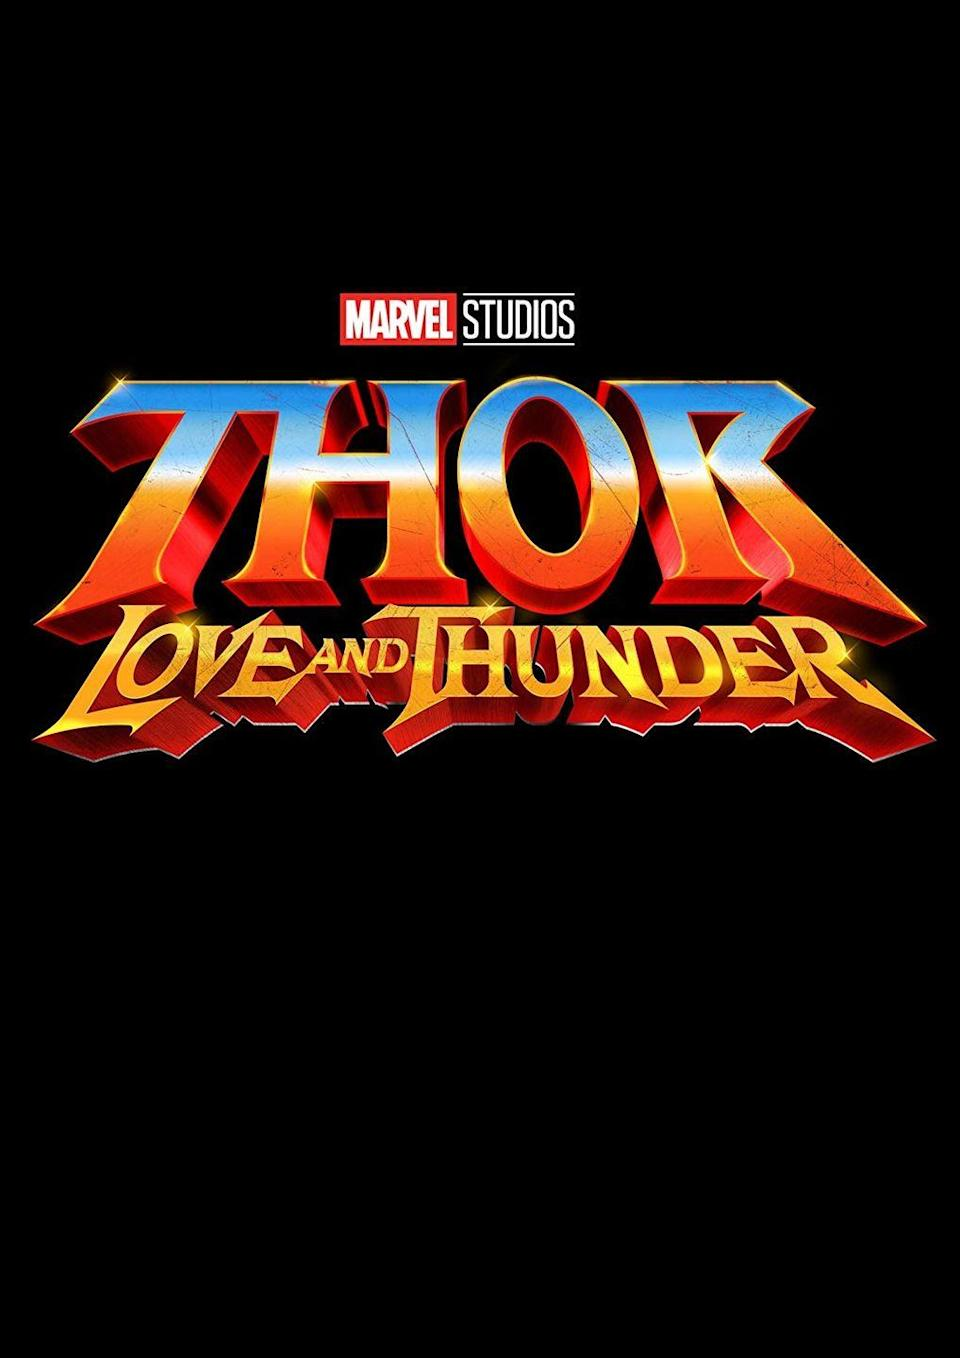 """<p>Marvel will kick off 2022 with a new Thor movie, directed by Ragnarok's Taika Waititi. Rumor has it, this time <a href=""""https://news.avclub.com/jane-foster-will-wield-the-hammer-as-the-female-thor-in-1836568851"""" rel=""""nofollow noopener"""" target=""""_blank"""" data-ylk=""""slk:Jane gets to pick up the hammer"""" class=""""link rapid-noclick-resp"""">Jane gets to pick up the hammer</a>! It hits theaters May 6, 2022. </p>"""